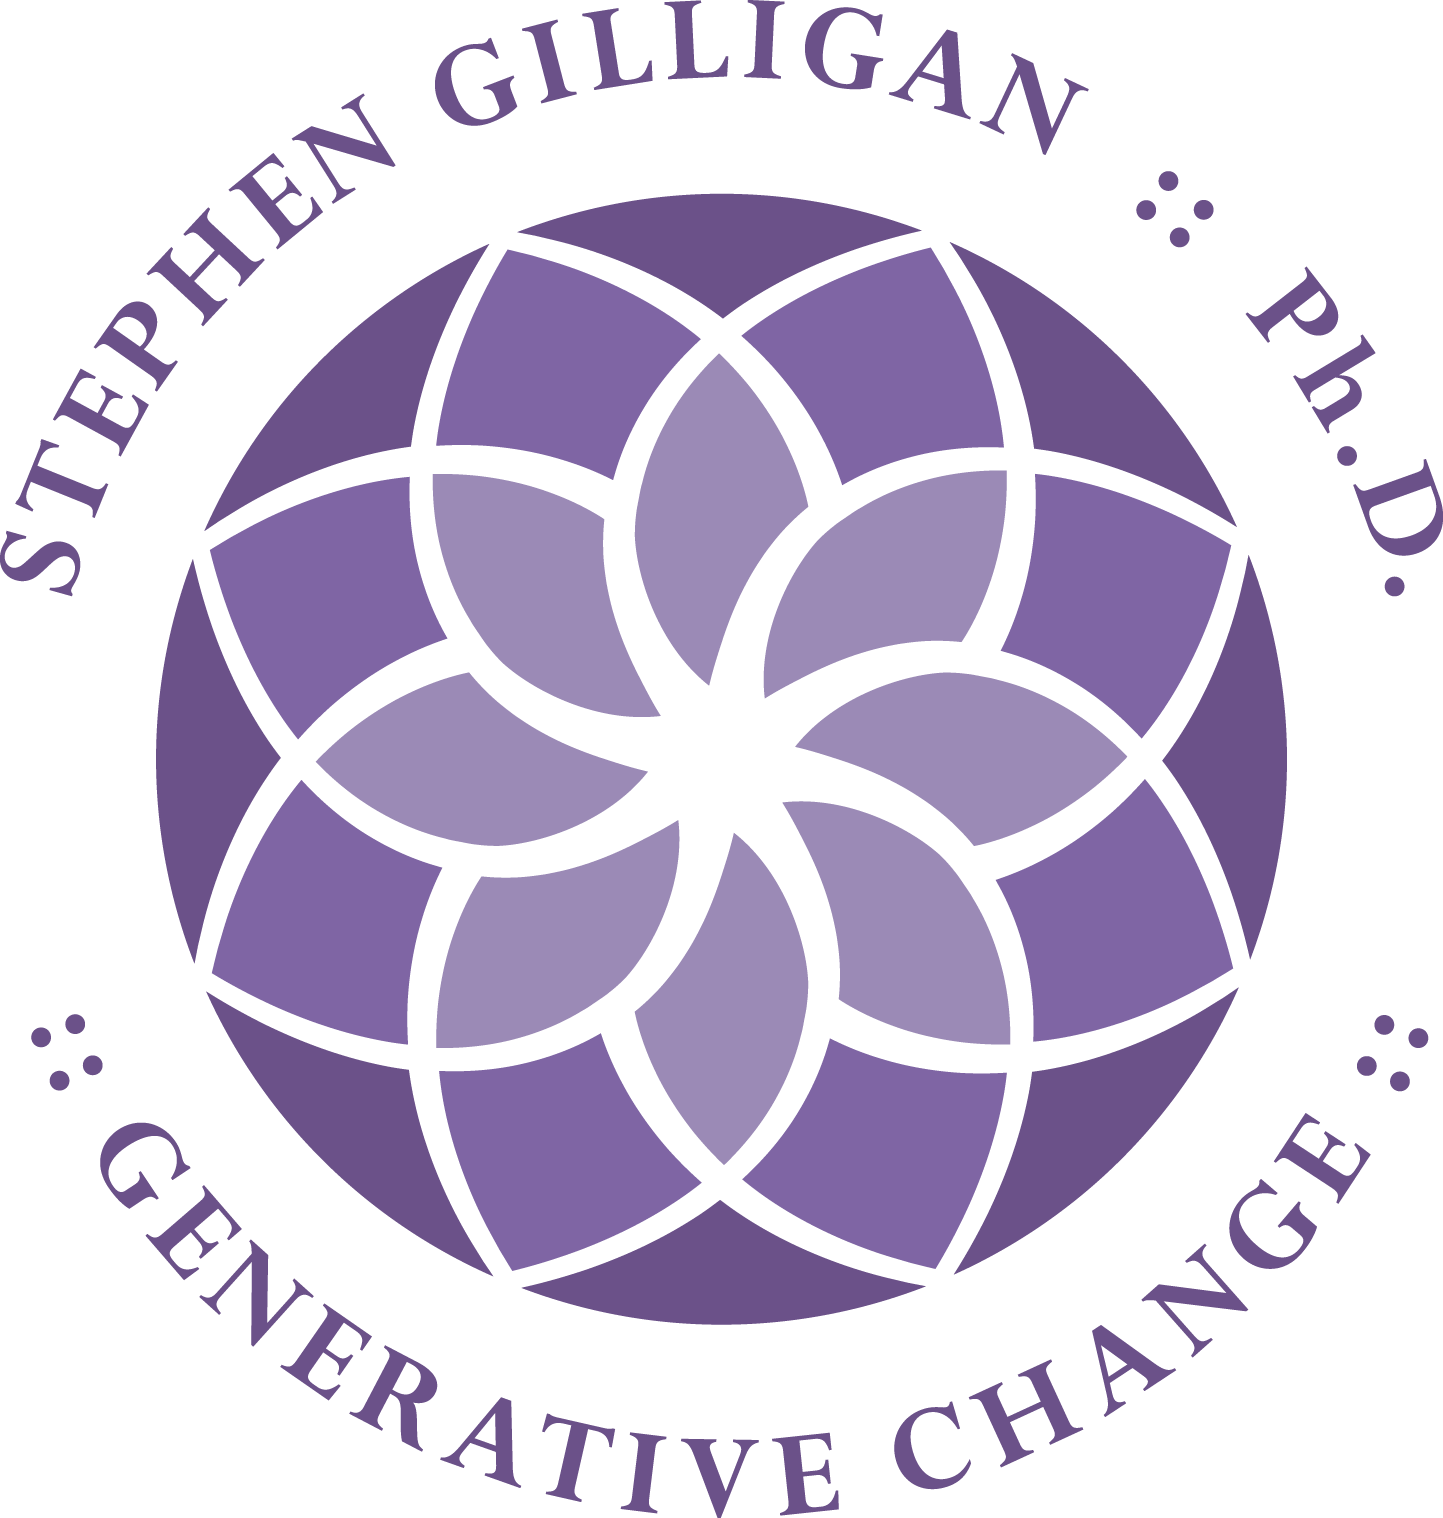 Stephen Gilligan